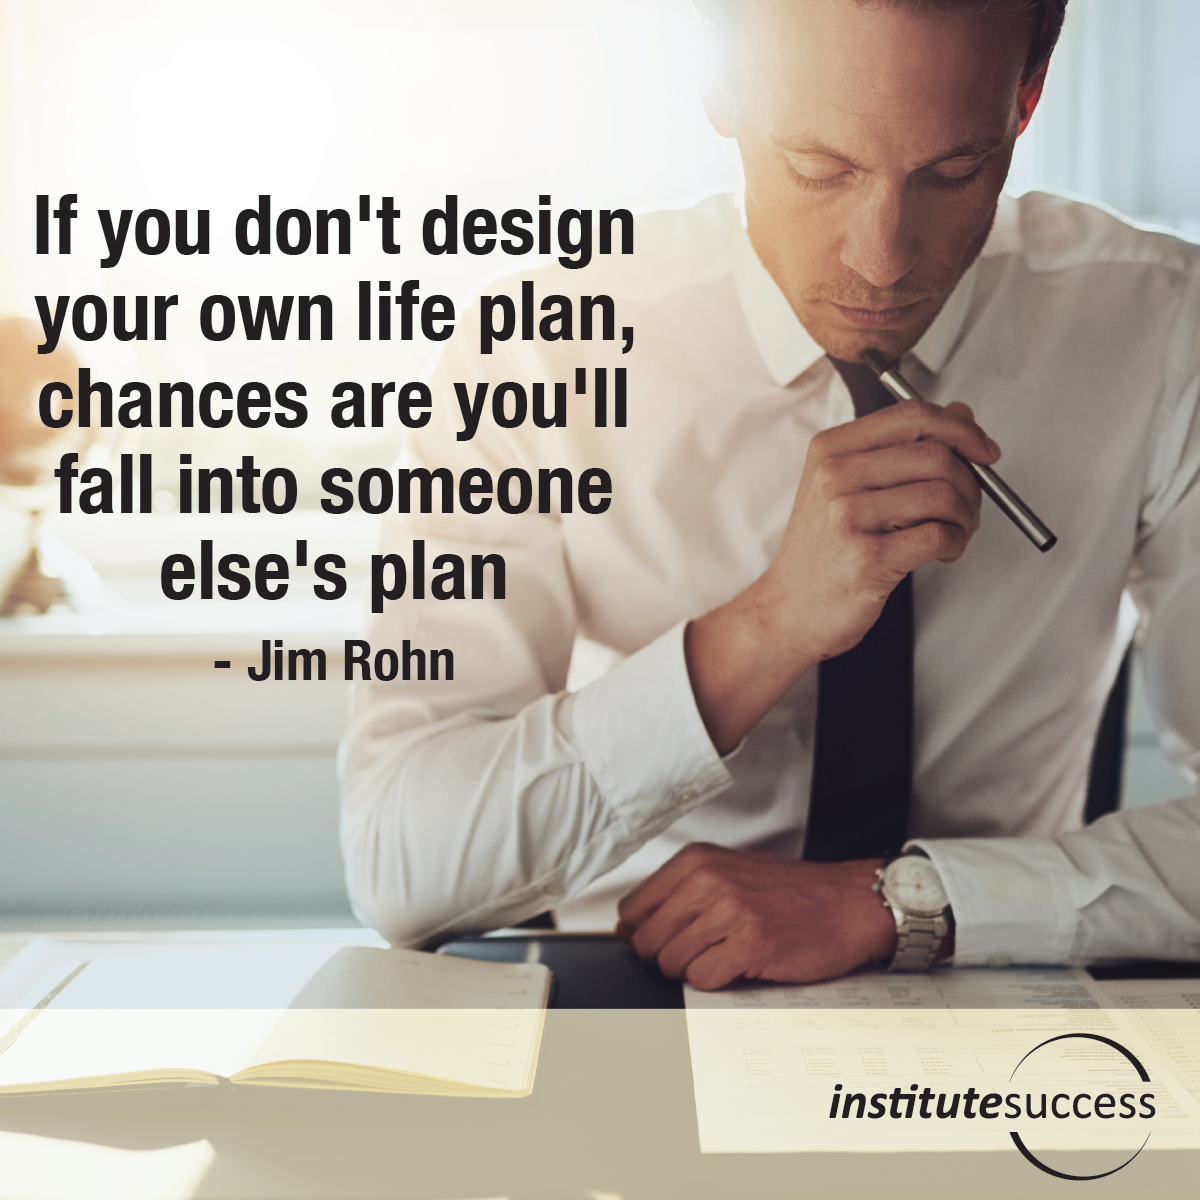 If you don't design your own life plan, chances are you'll fall into someone else's plan –  Jim Rohn